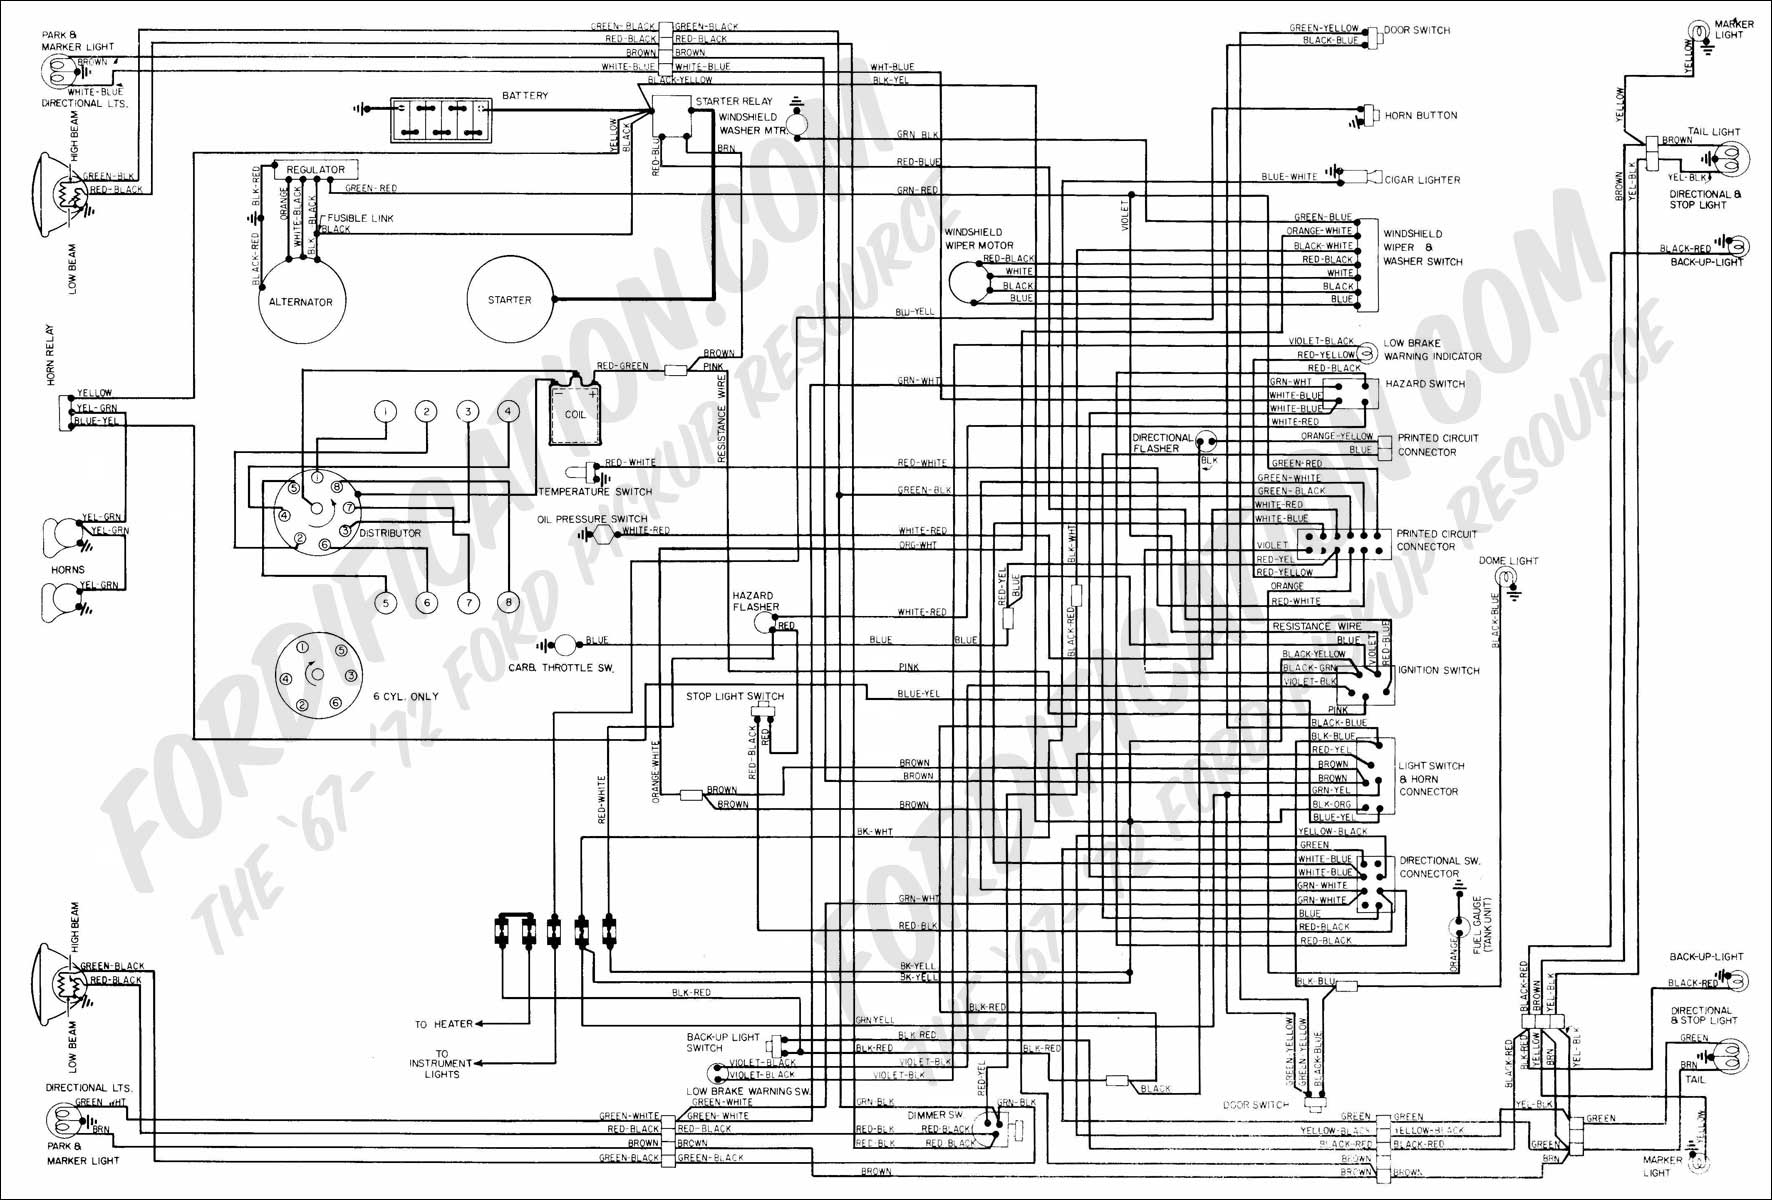 headlamp wiring diagram with Schematics H on 1986 Nissan 300zx Wiring Harness also Yamaha Ybr 125 Electrical System Wiring together with T14843434 Witch relay works headlights 98 ford as well Schematics i together with 7 Pin Trailer Harness.